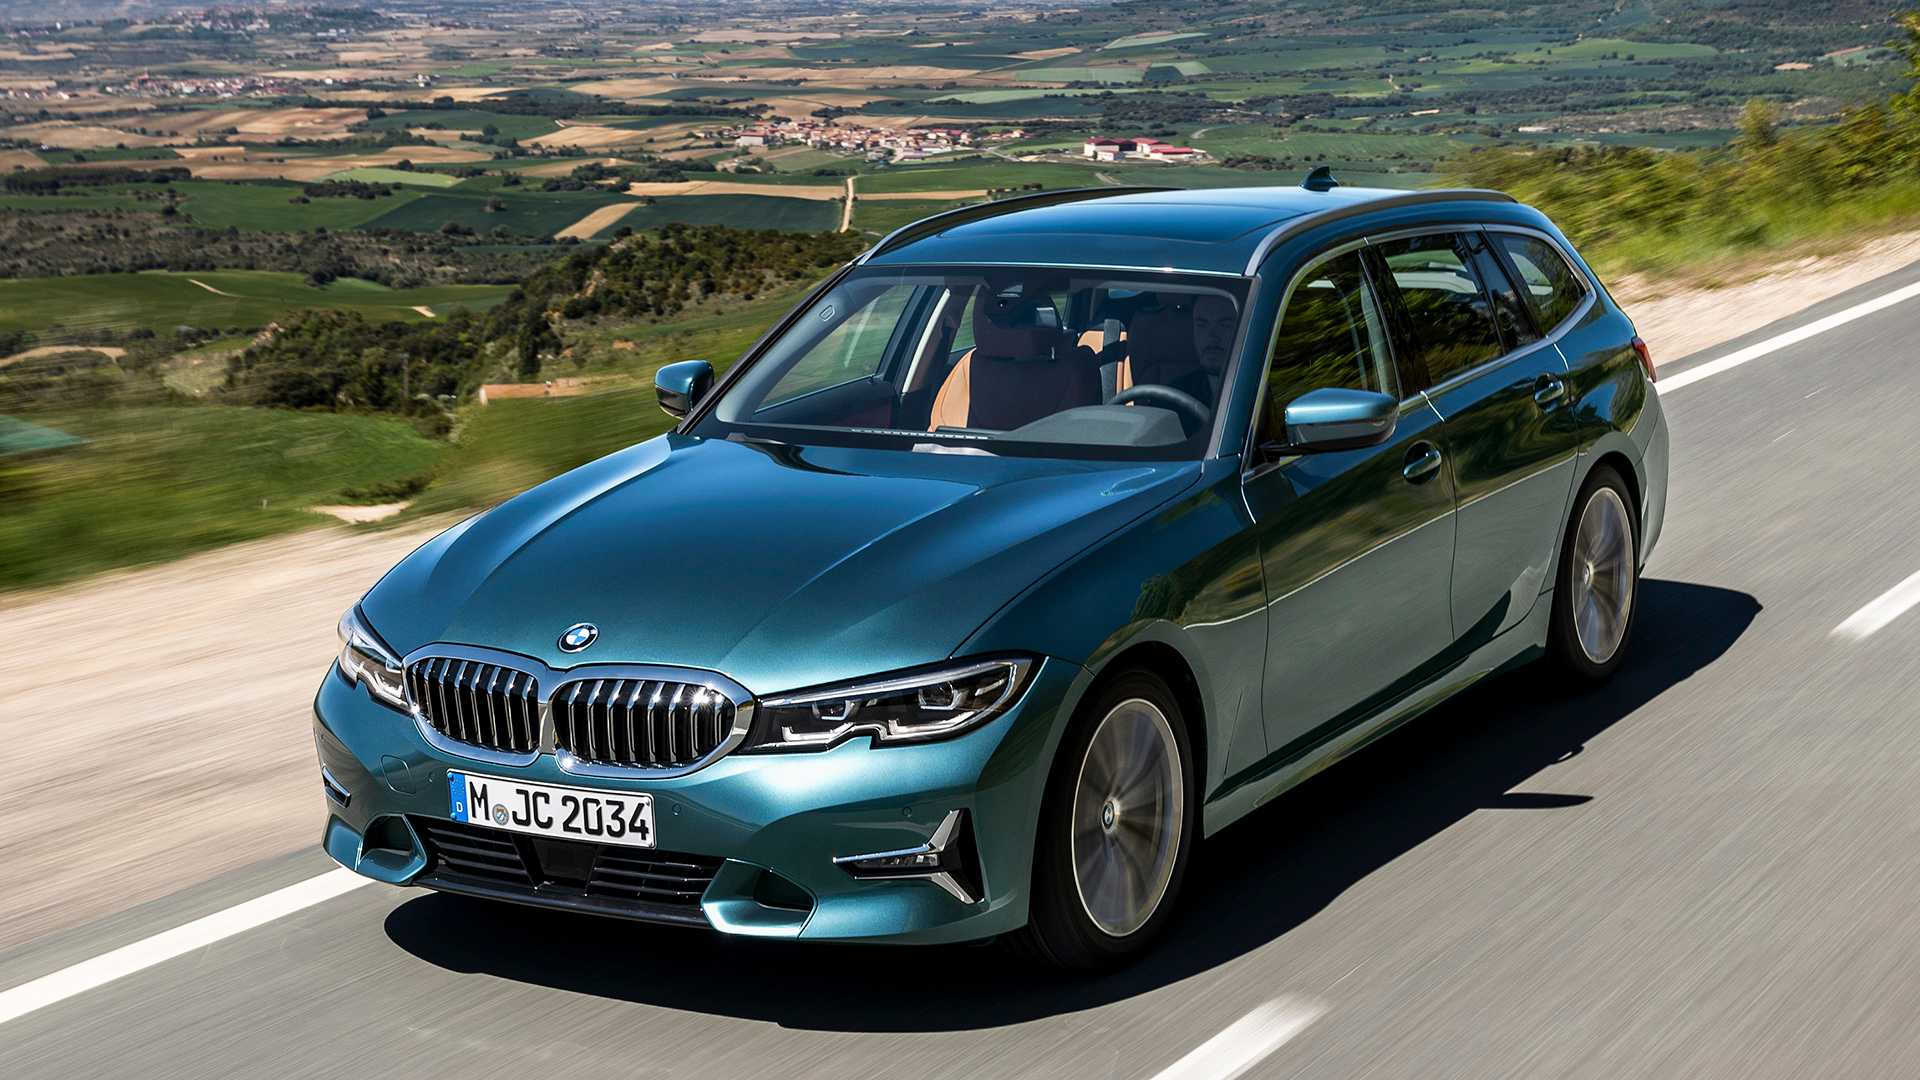 A number of official photos of the next BMW 3 Series estate/wagon have cropped up on a German car news website